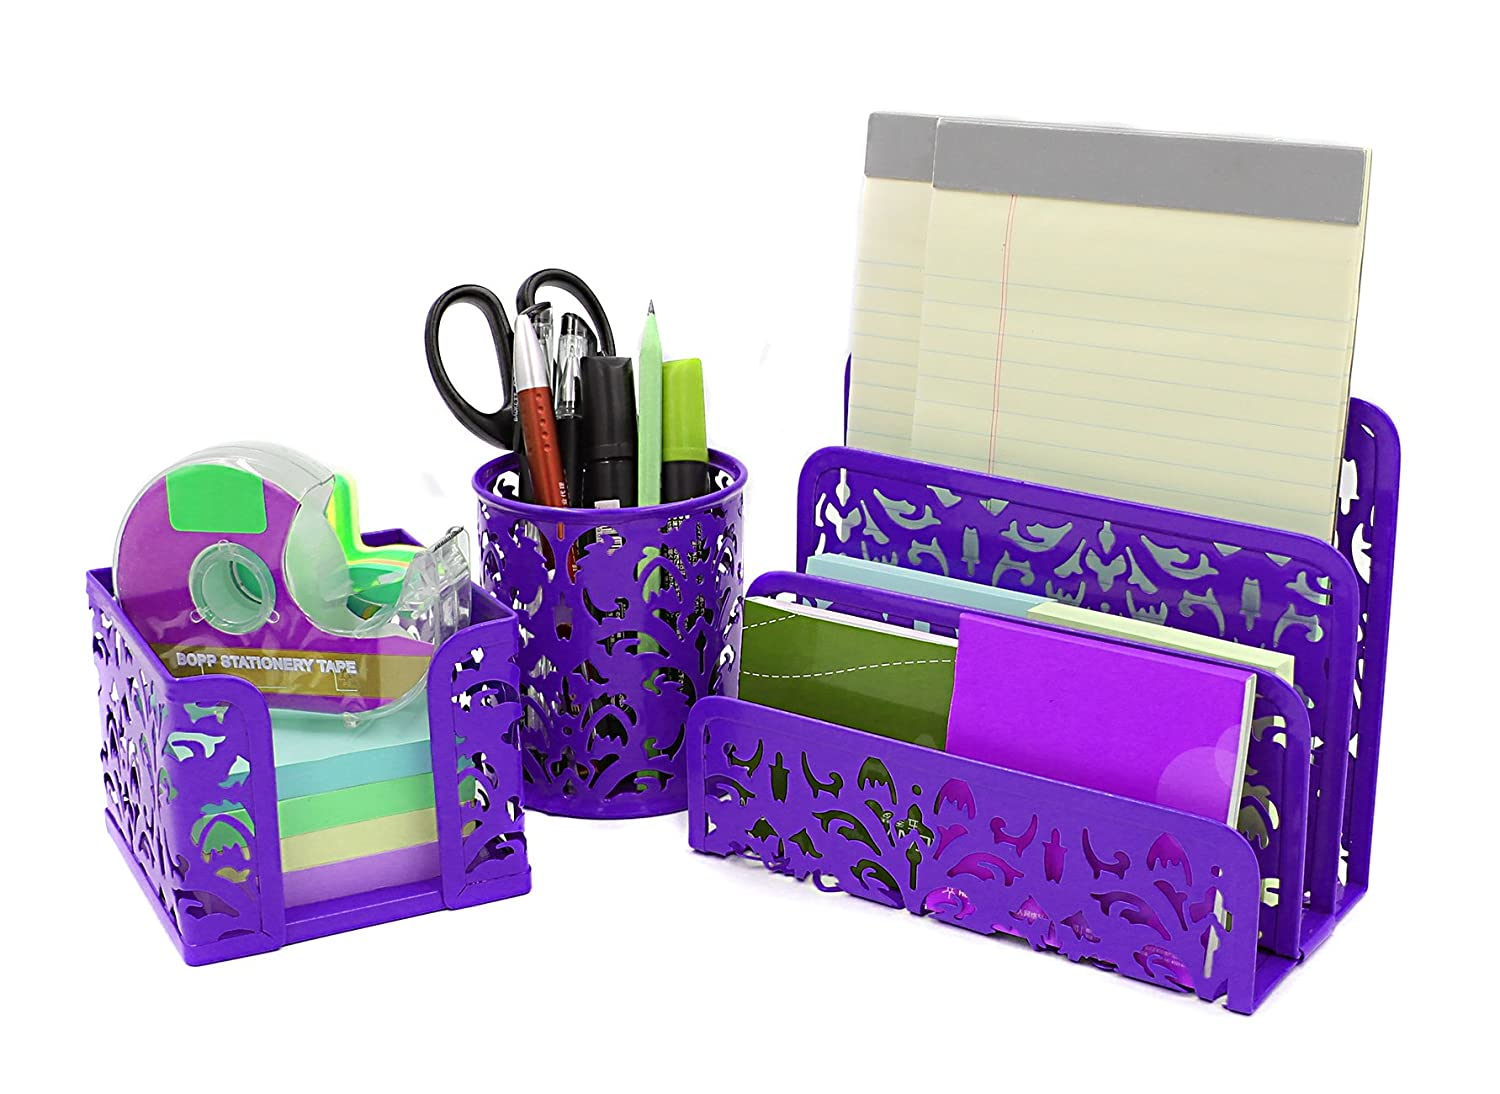 Lovely Amazon.com : EasyPAG Carved Hollow Flower Pattern 3 In 1 Desk Organizer Set    Letter Sorter, Pencil Holder And Stick Note Holder, Purple : Office  Products